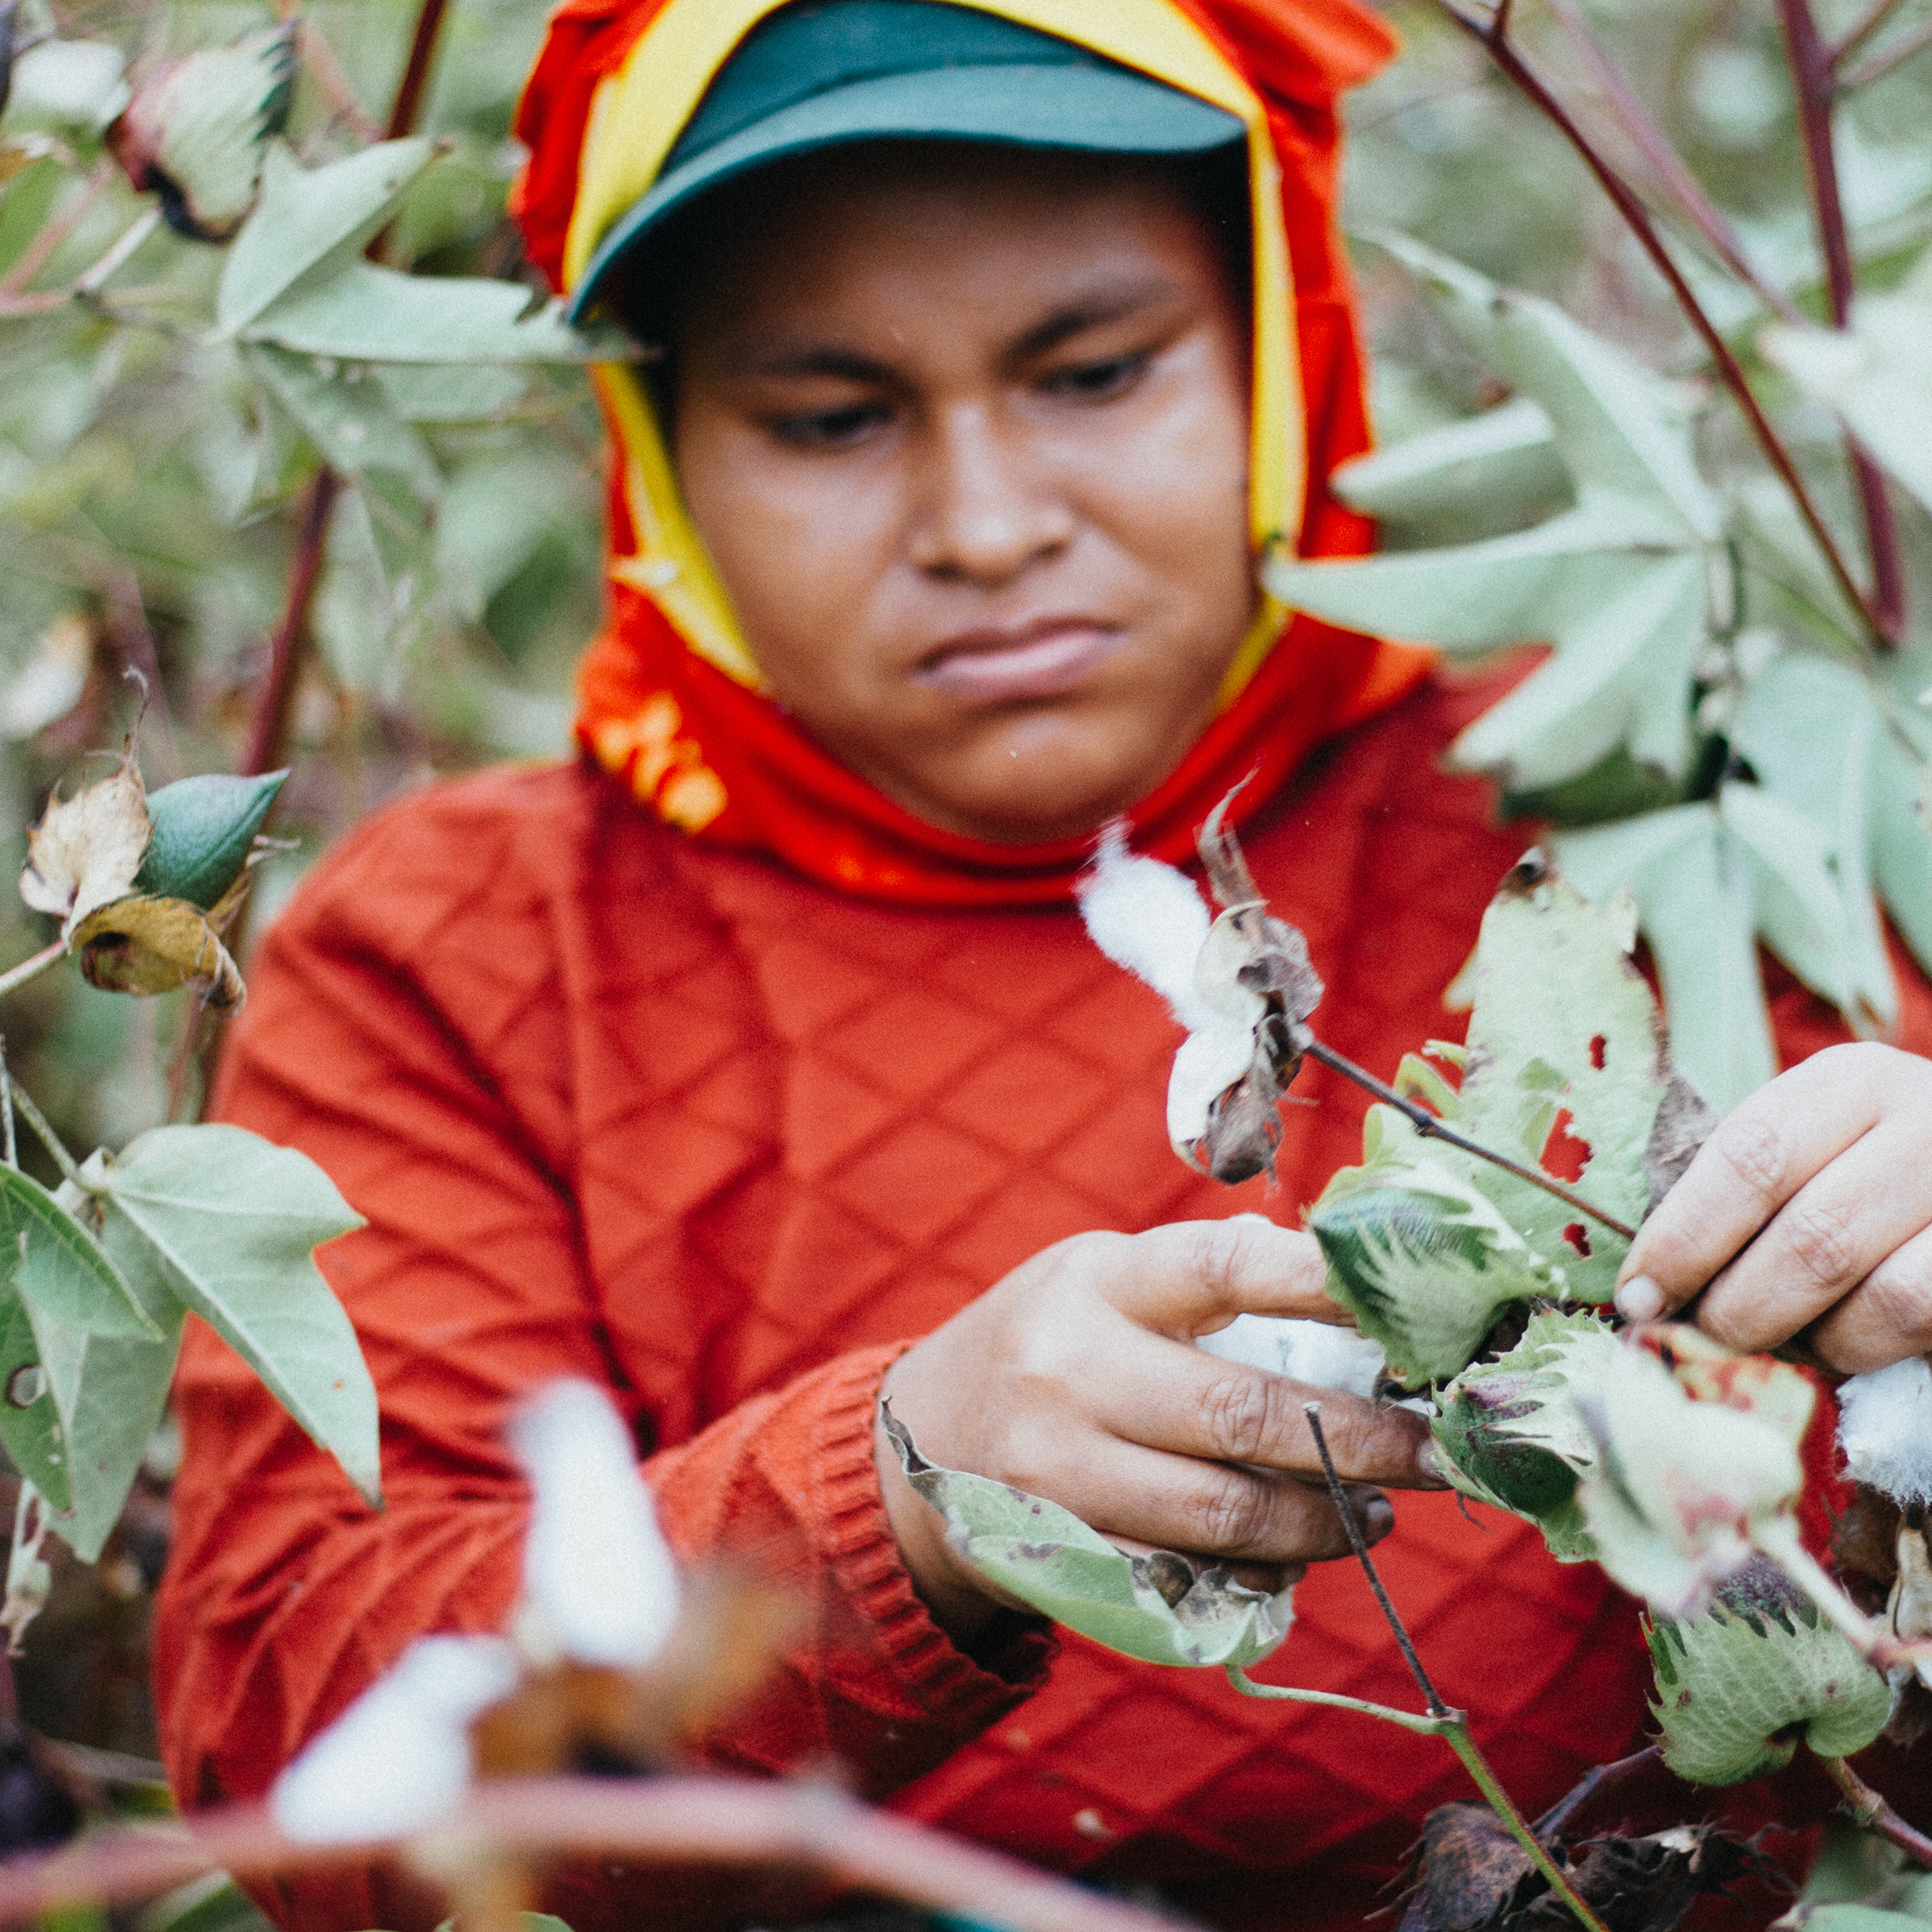 Organic Pima Cotton - Our cotton is hand picked in the mountainous regions of Peru. Peruvian Pima Cotton is considered the finest in the world. It is truly the gold standard for long strand cotton. Read more about why we chose organic pima cotton from Peru in our blog. CLICK HERE